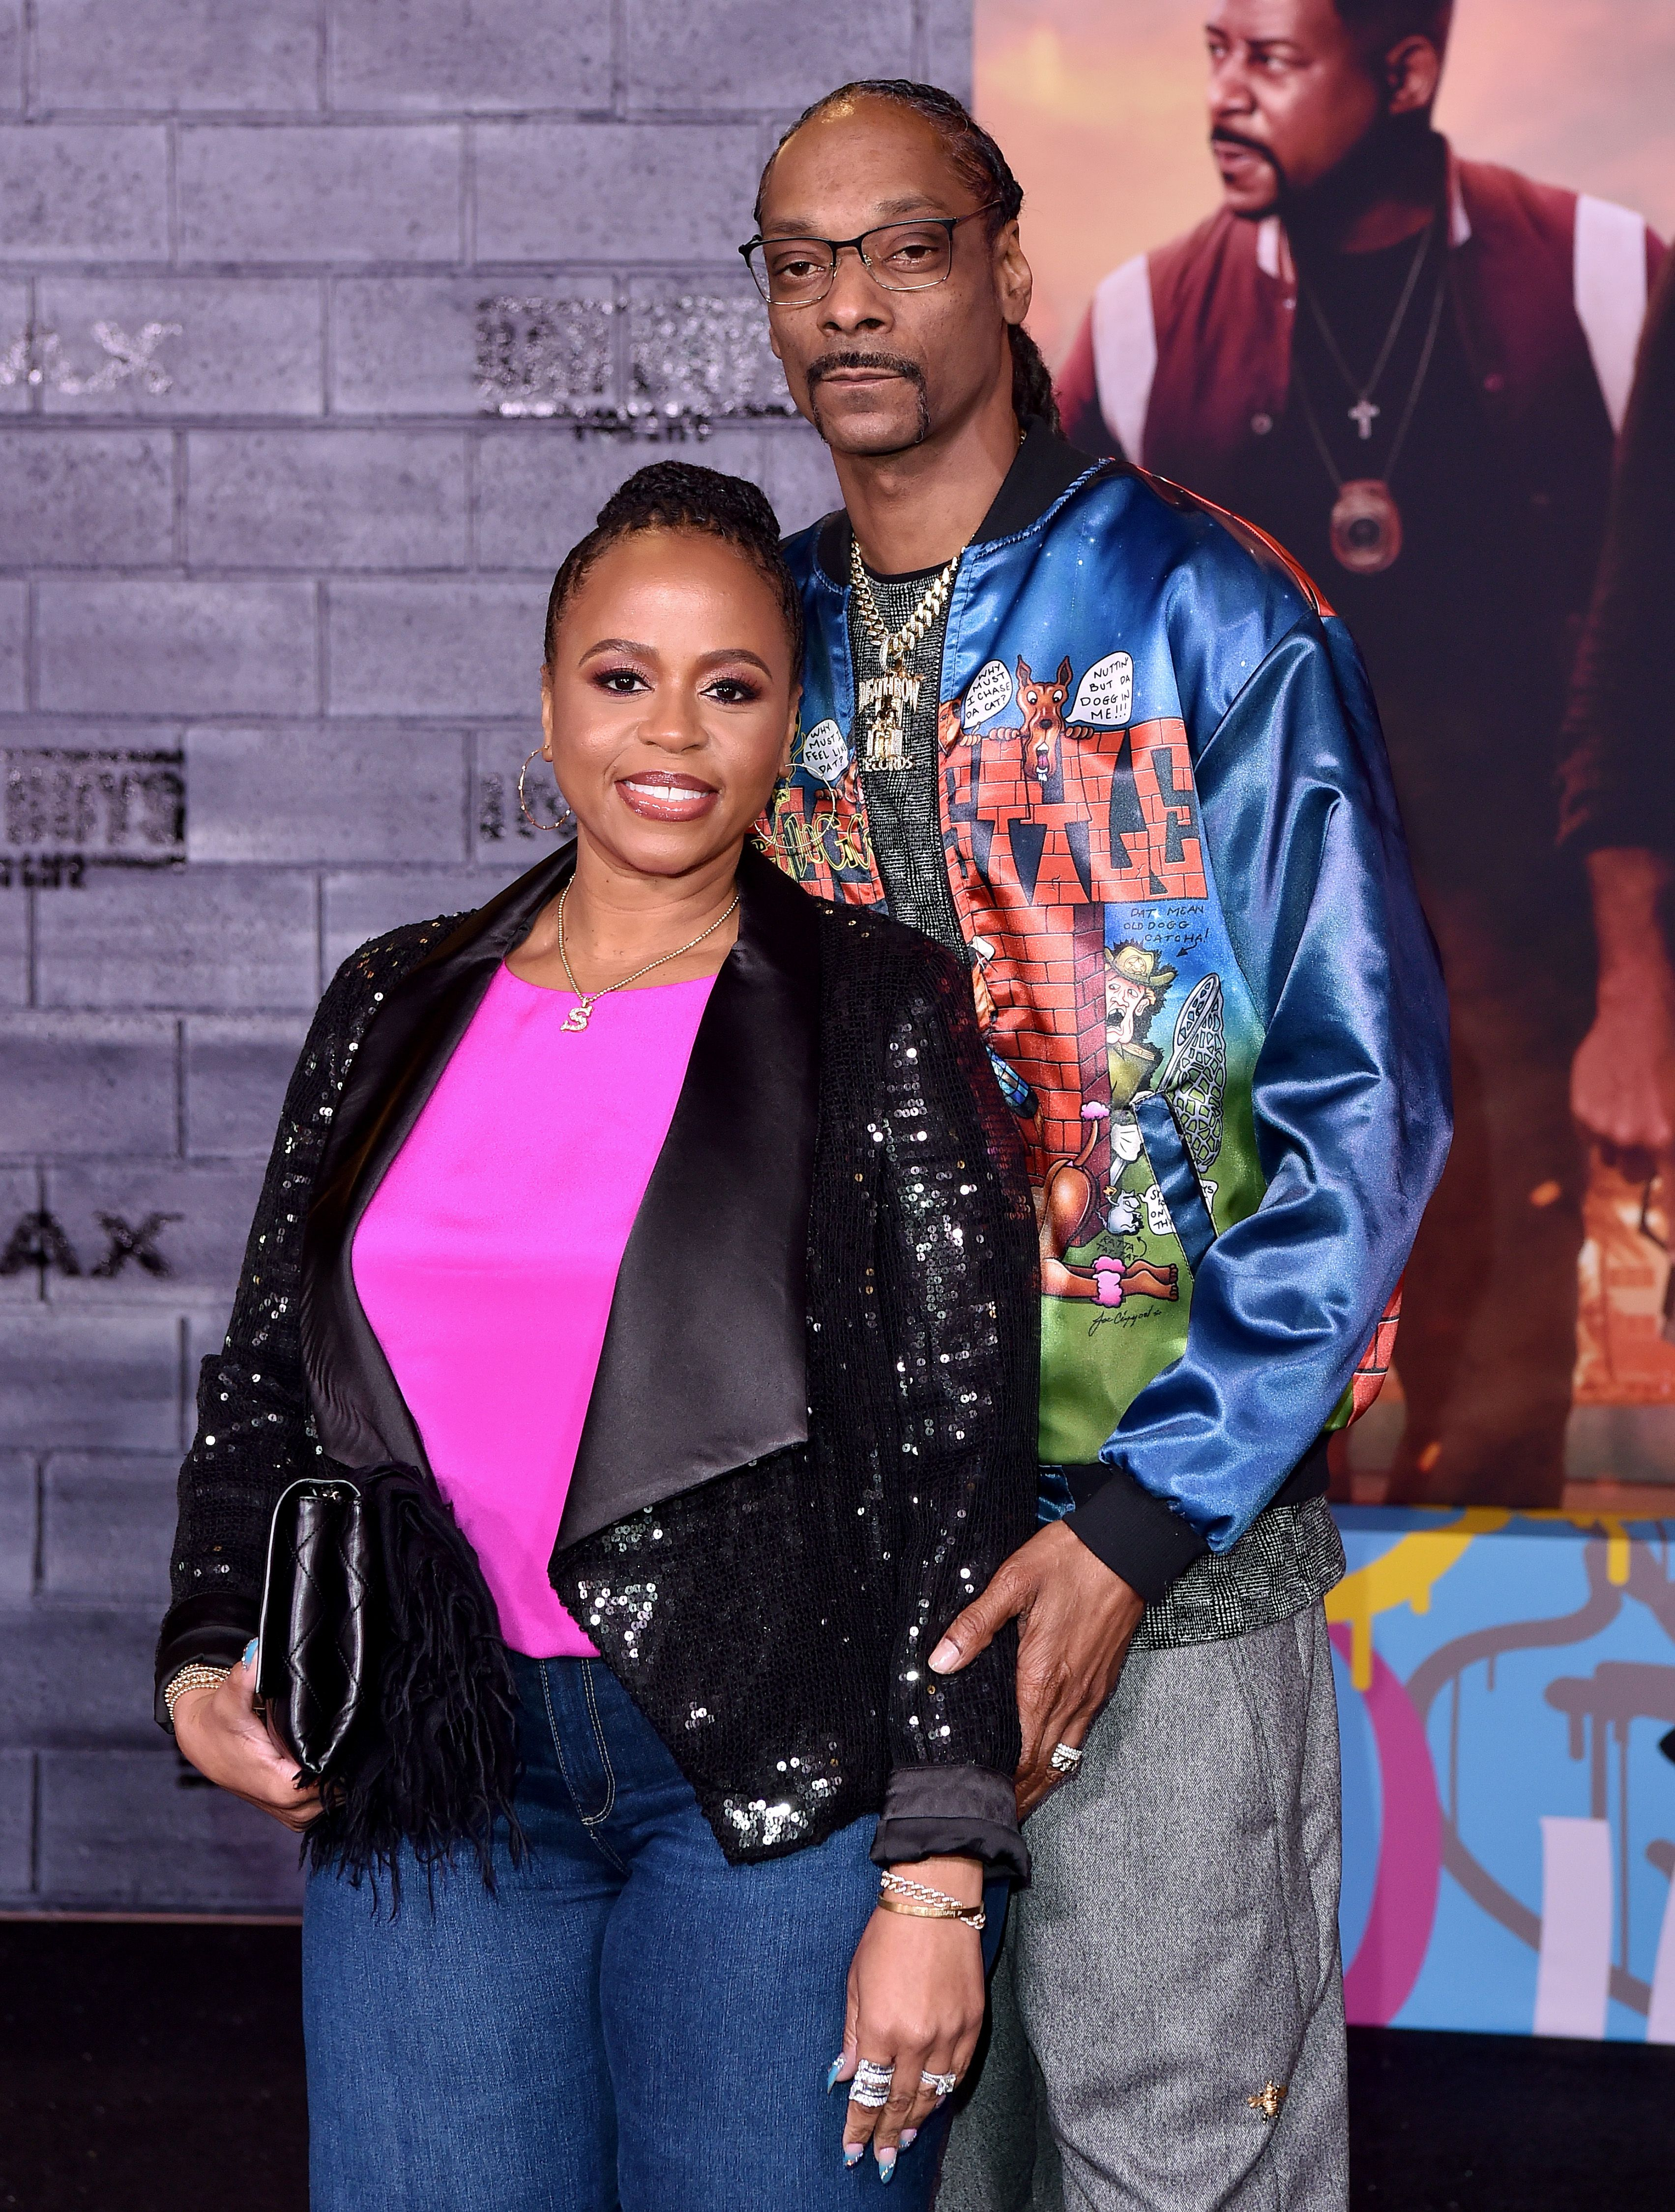 """Shante Broadus and Snoop Dogg during the premiere of Columbia Pictures' """"Bad Boys for Life"""" at TCL Chinese Theatre on January 14, 2020 in Hollywood, California. 